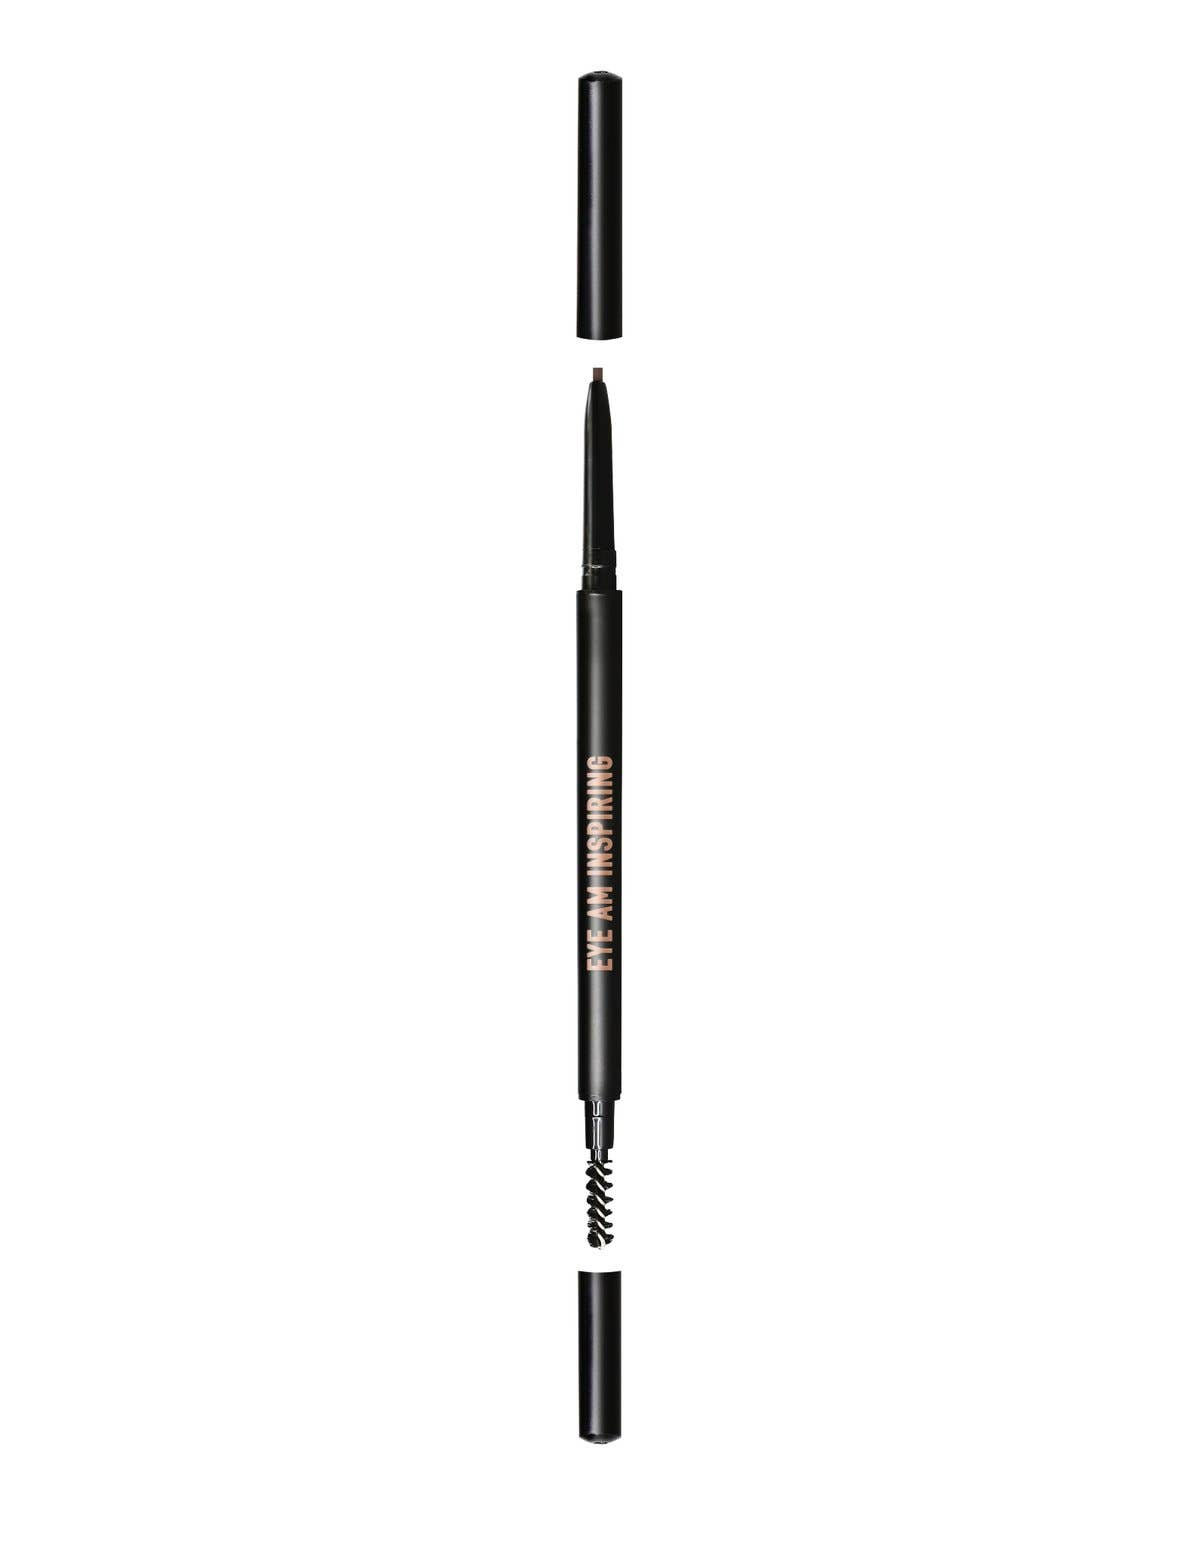 Eye Am Inspiring Definer Brow Pencil (dark)